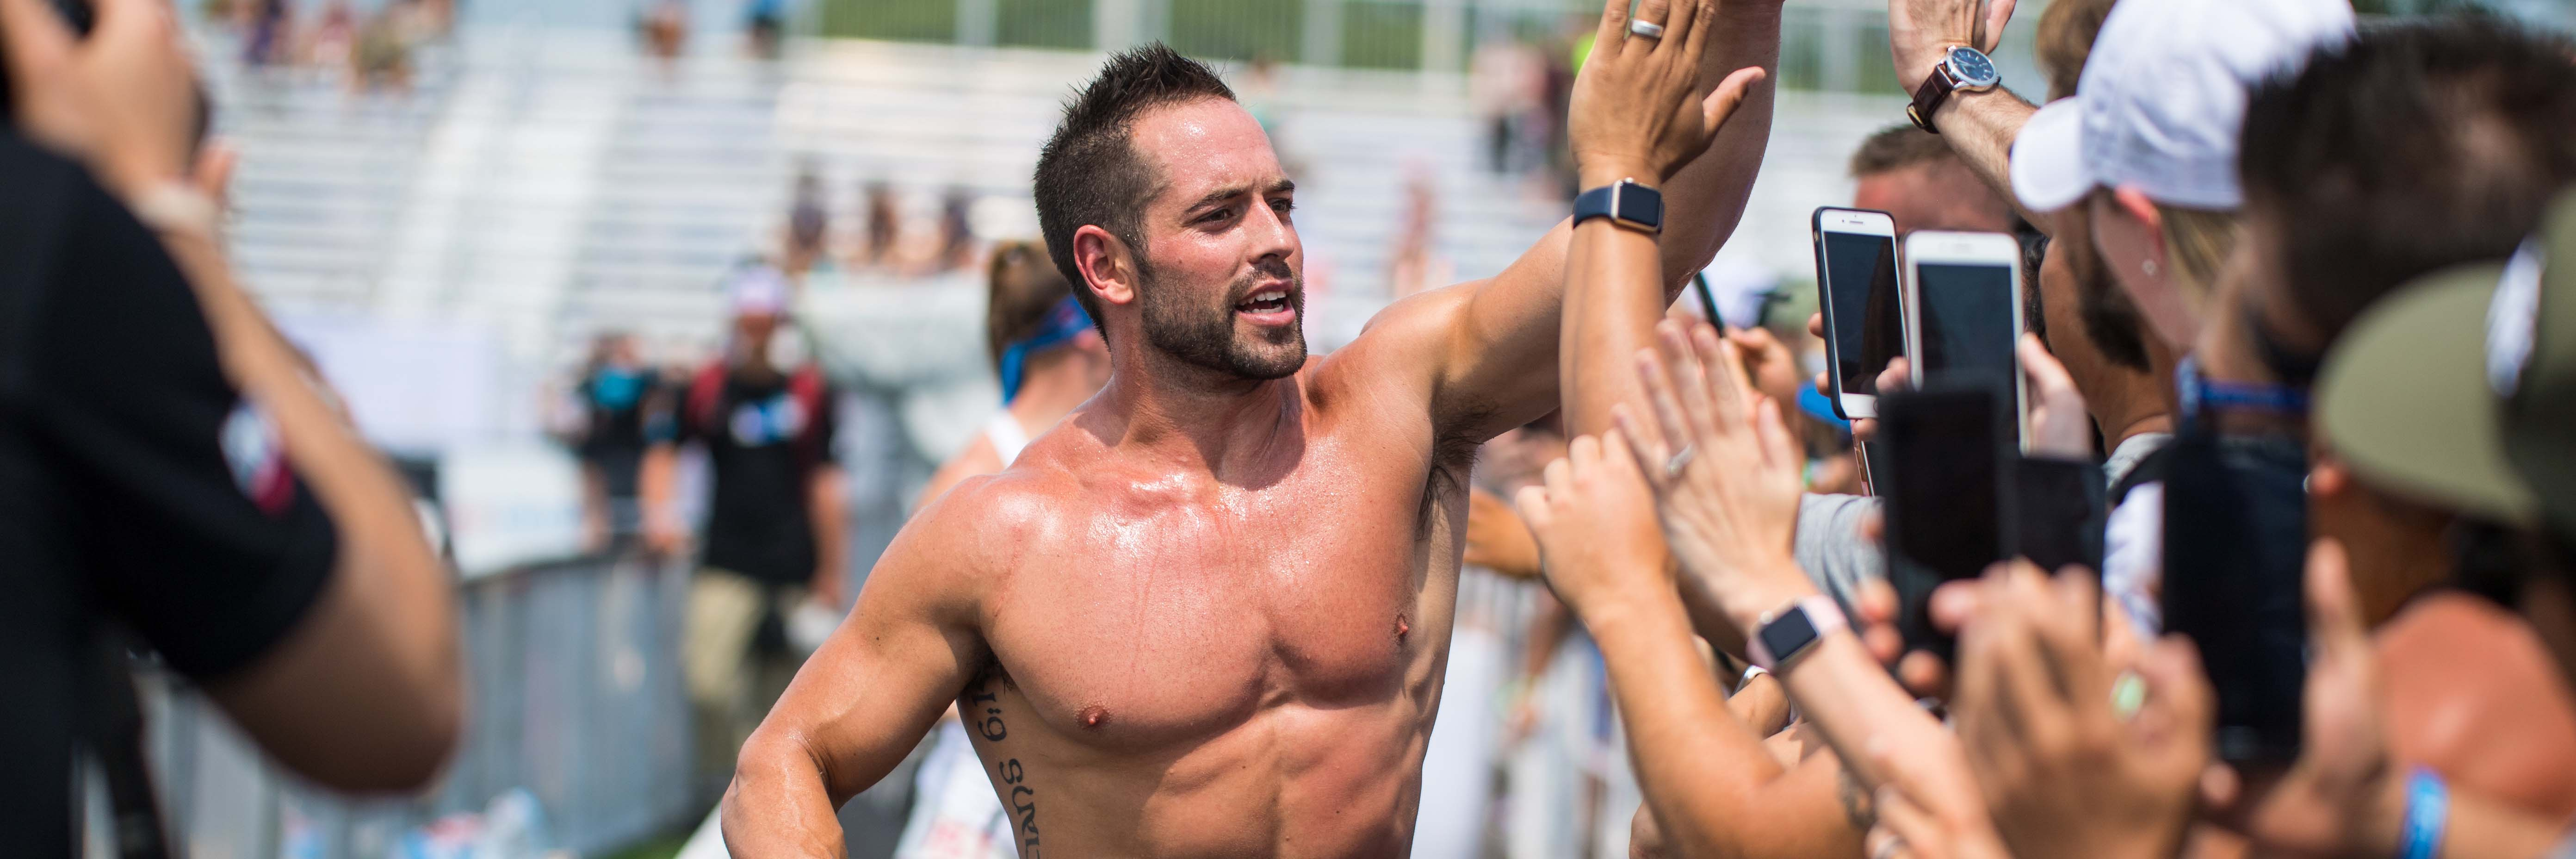 reebok crossfit competition